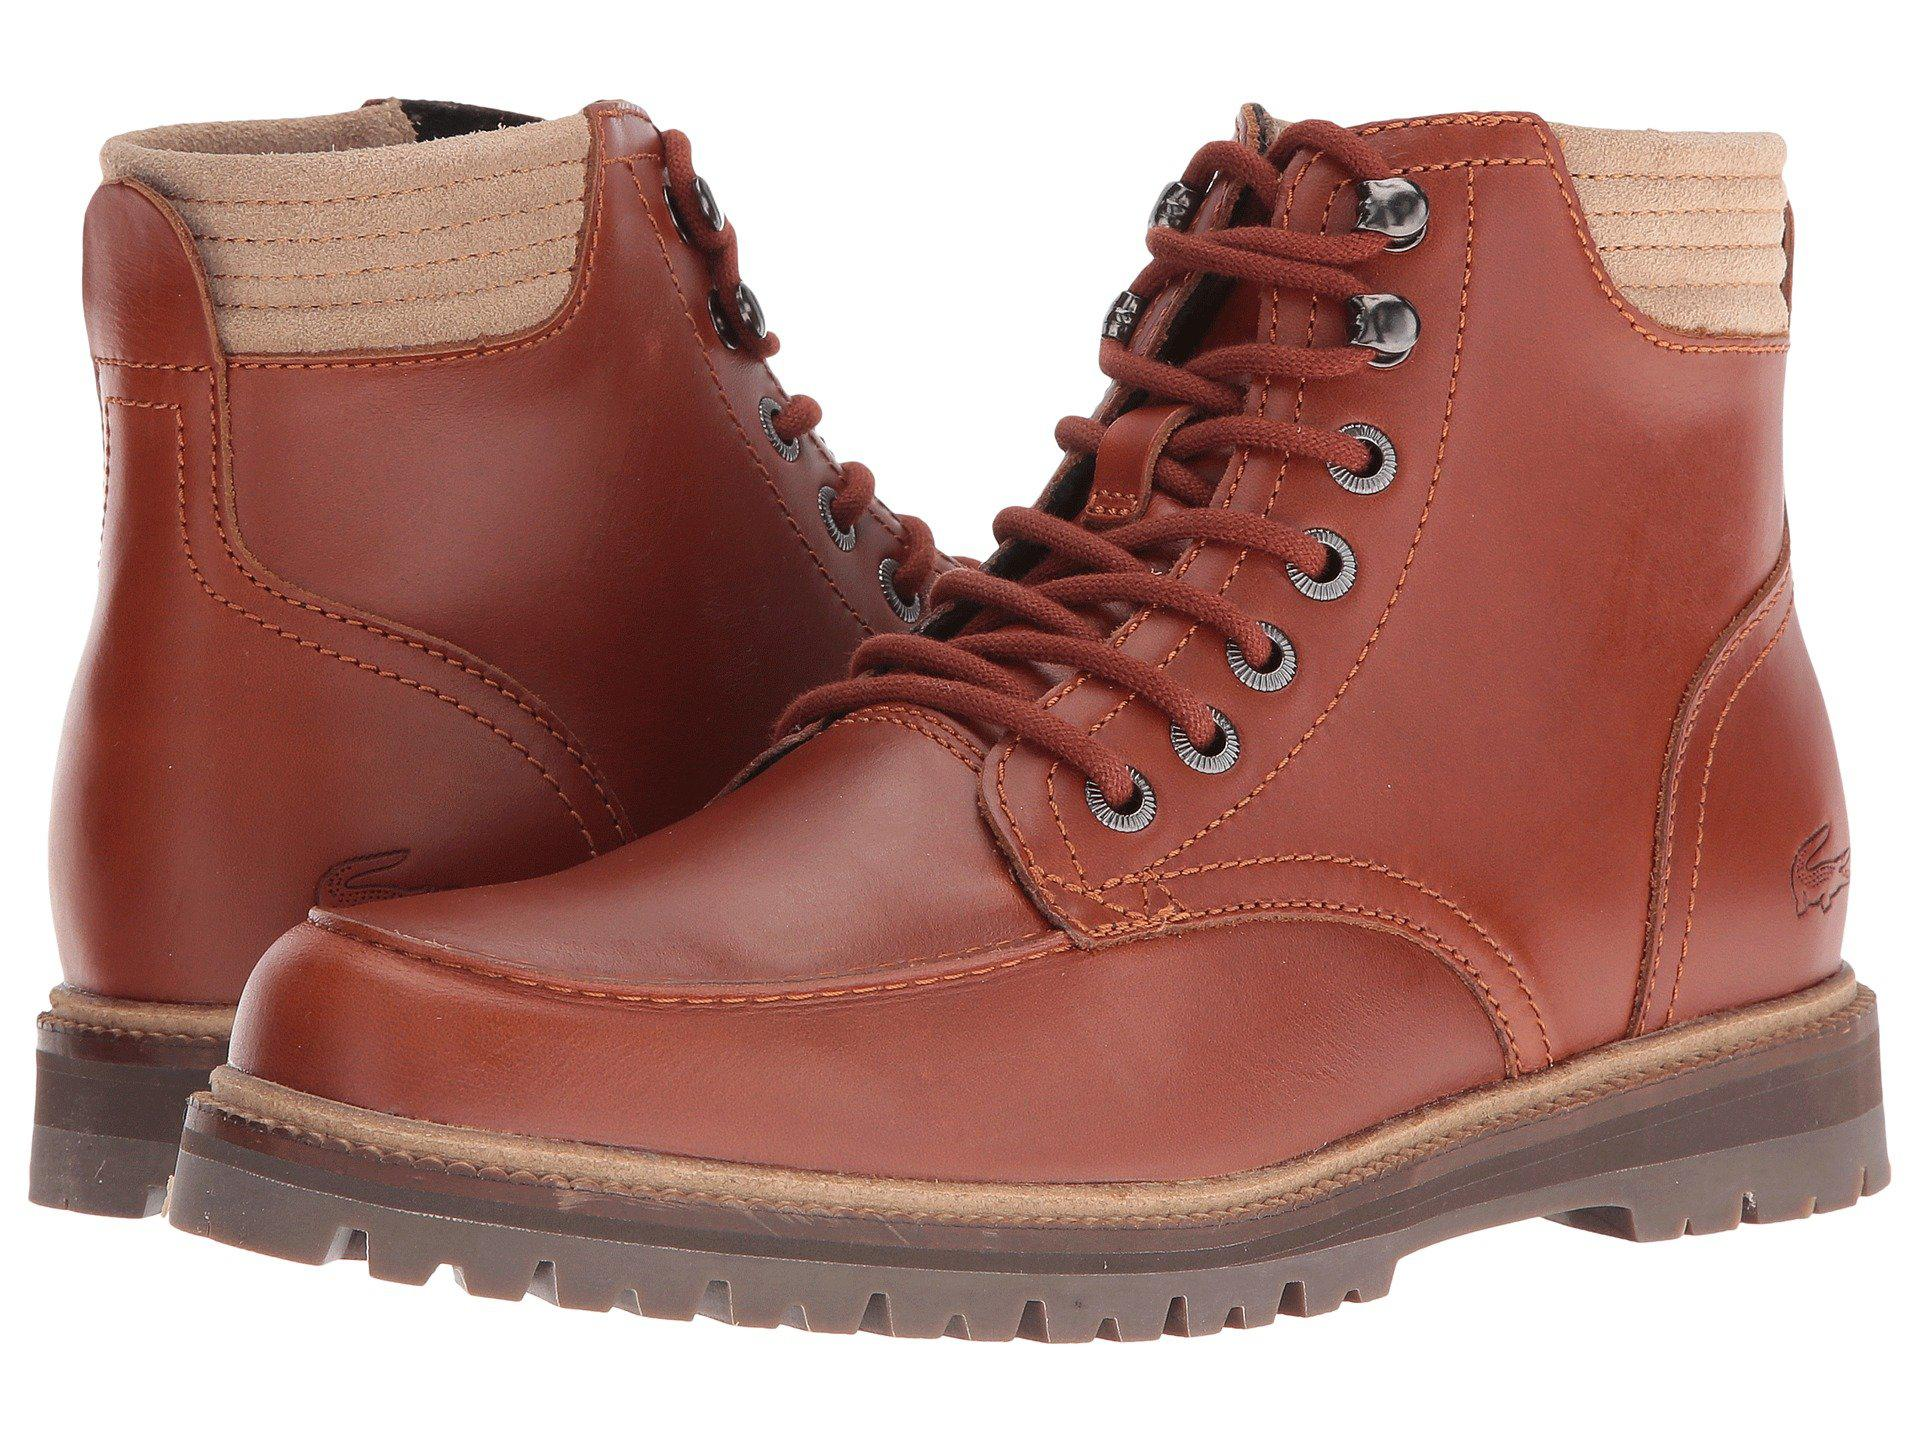 0ce56ebd557cd4 Lyst - Lacoste Montbard 416 1 Cam Fashion Sneaker Boot in Brown for ...